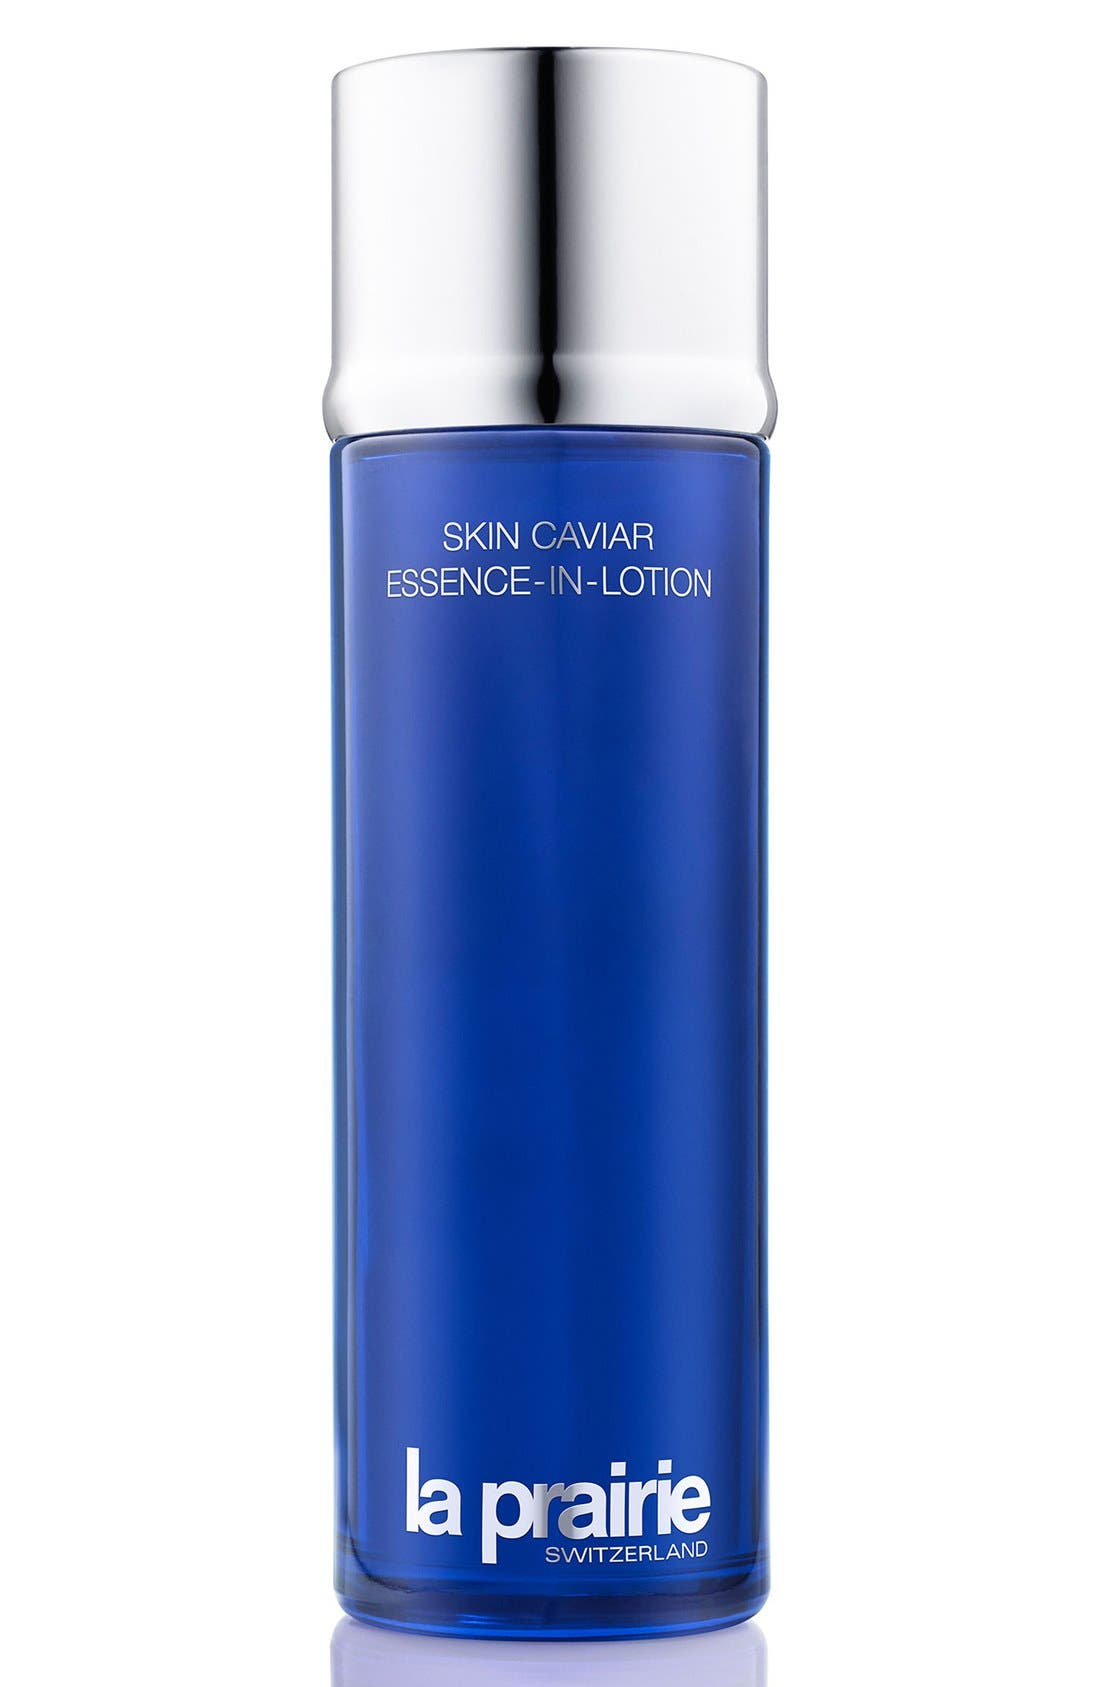 Skin Caviar Essence-in-Lotion,                             Main thumbnail 1, color,                             NO COLOR